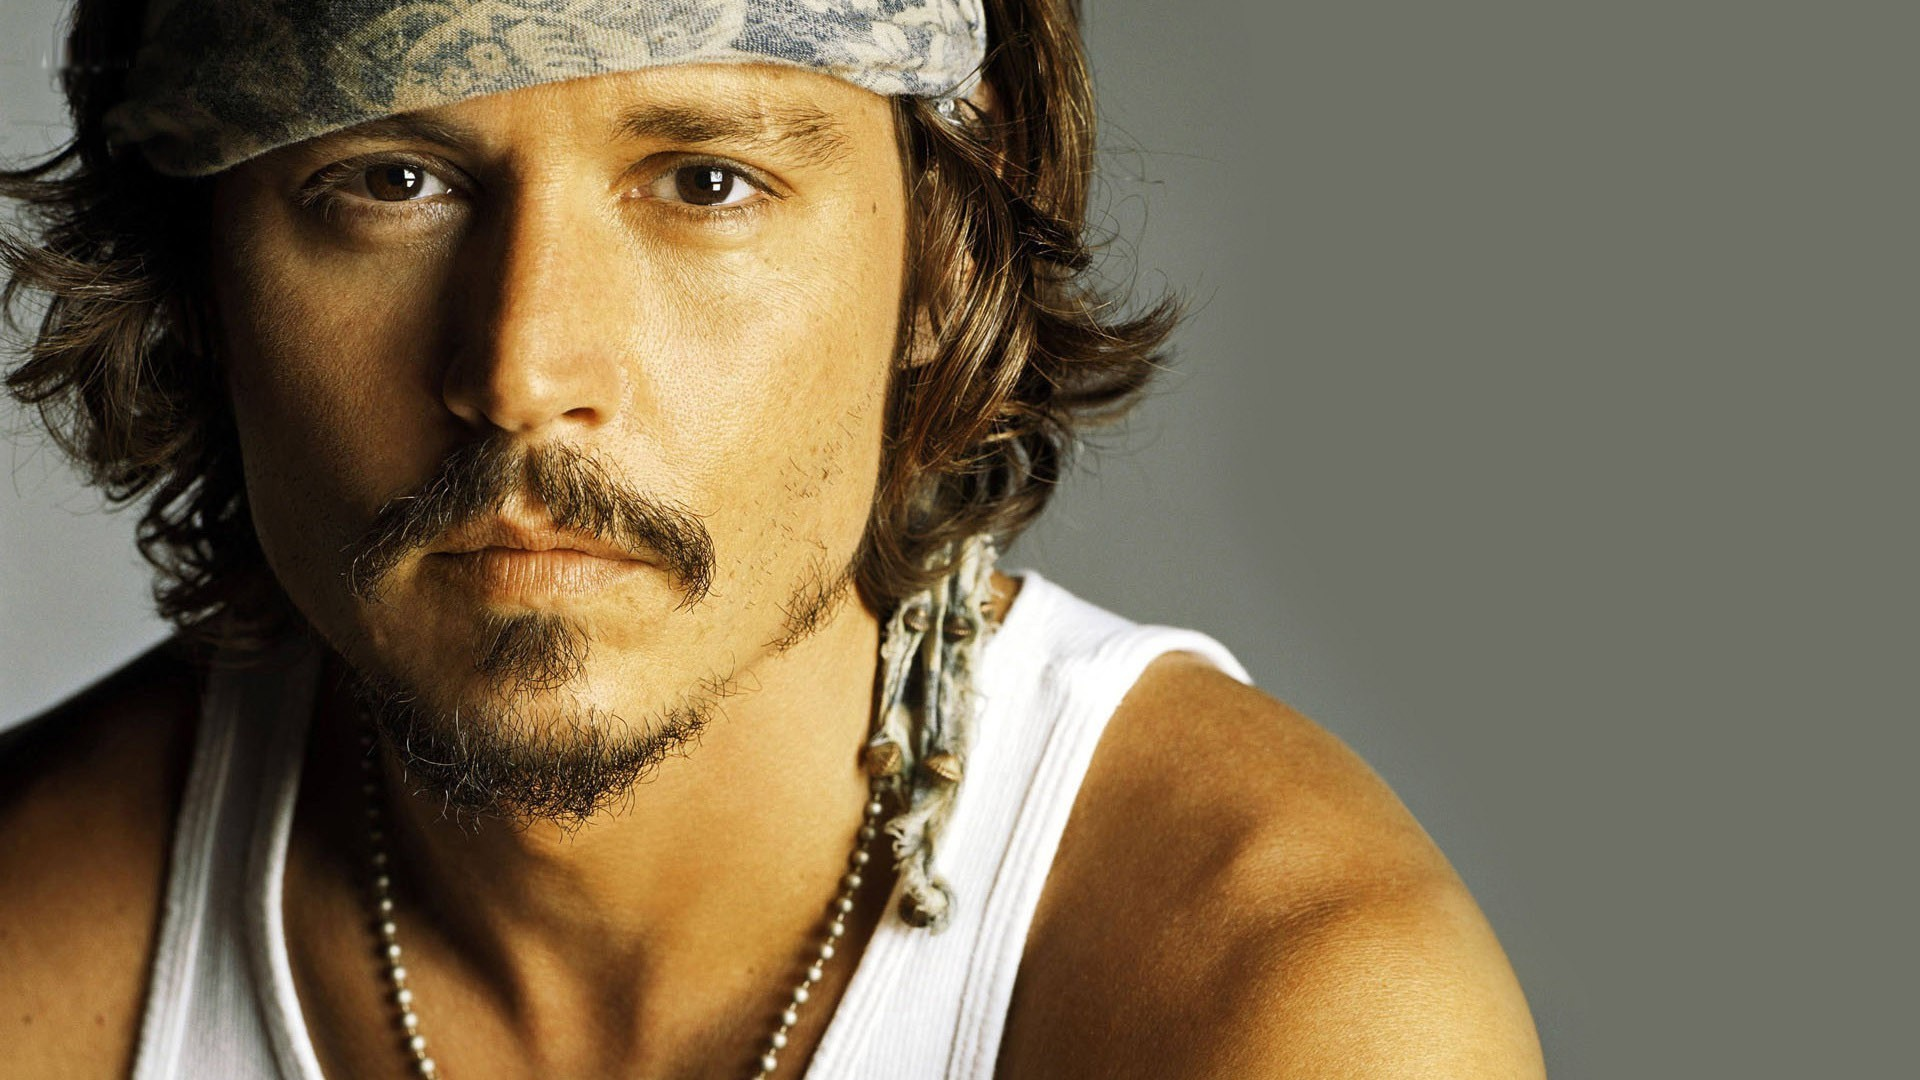 Gypsy Car Full Hd Wallpaper Johnny Depp Cool Pictures The Wow Style